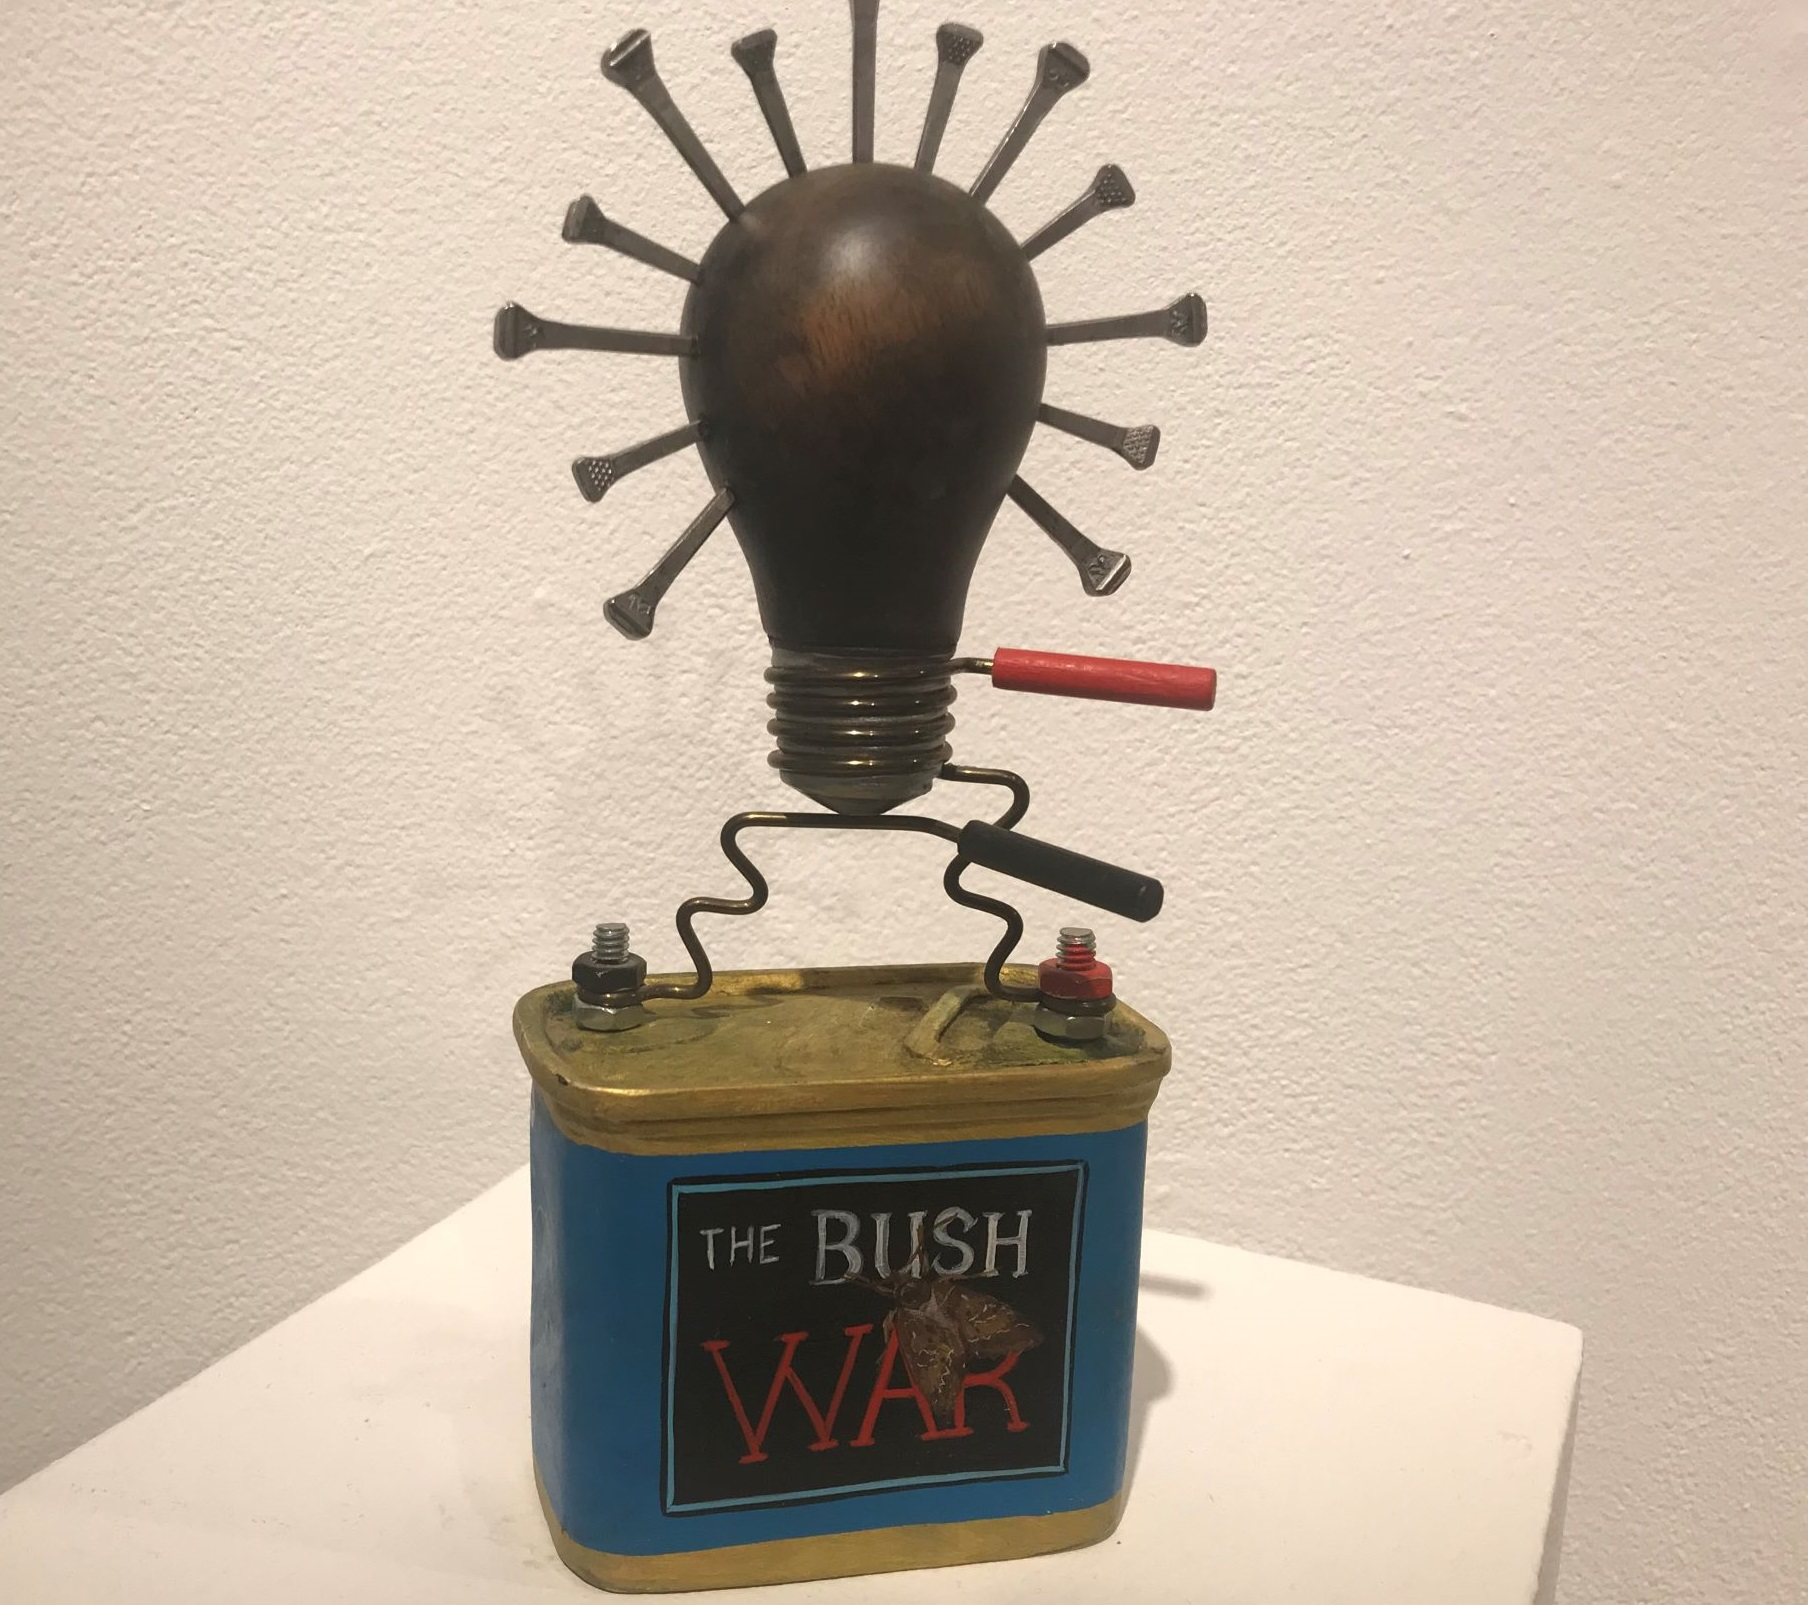 Sculpture, Battery box and lightbulb with points